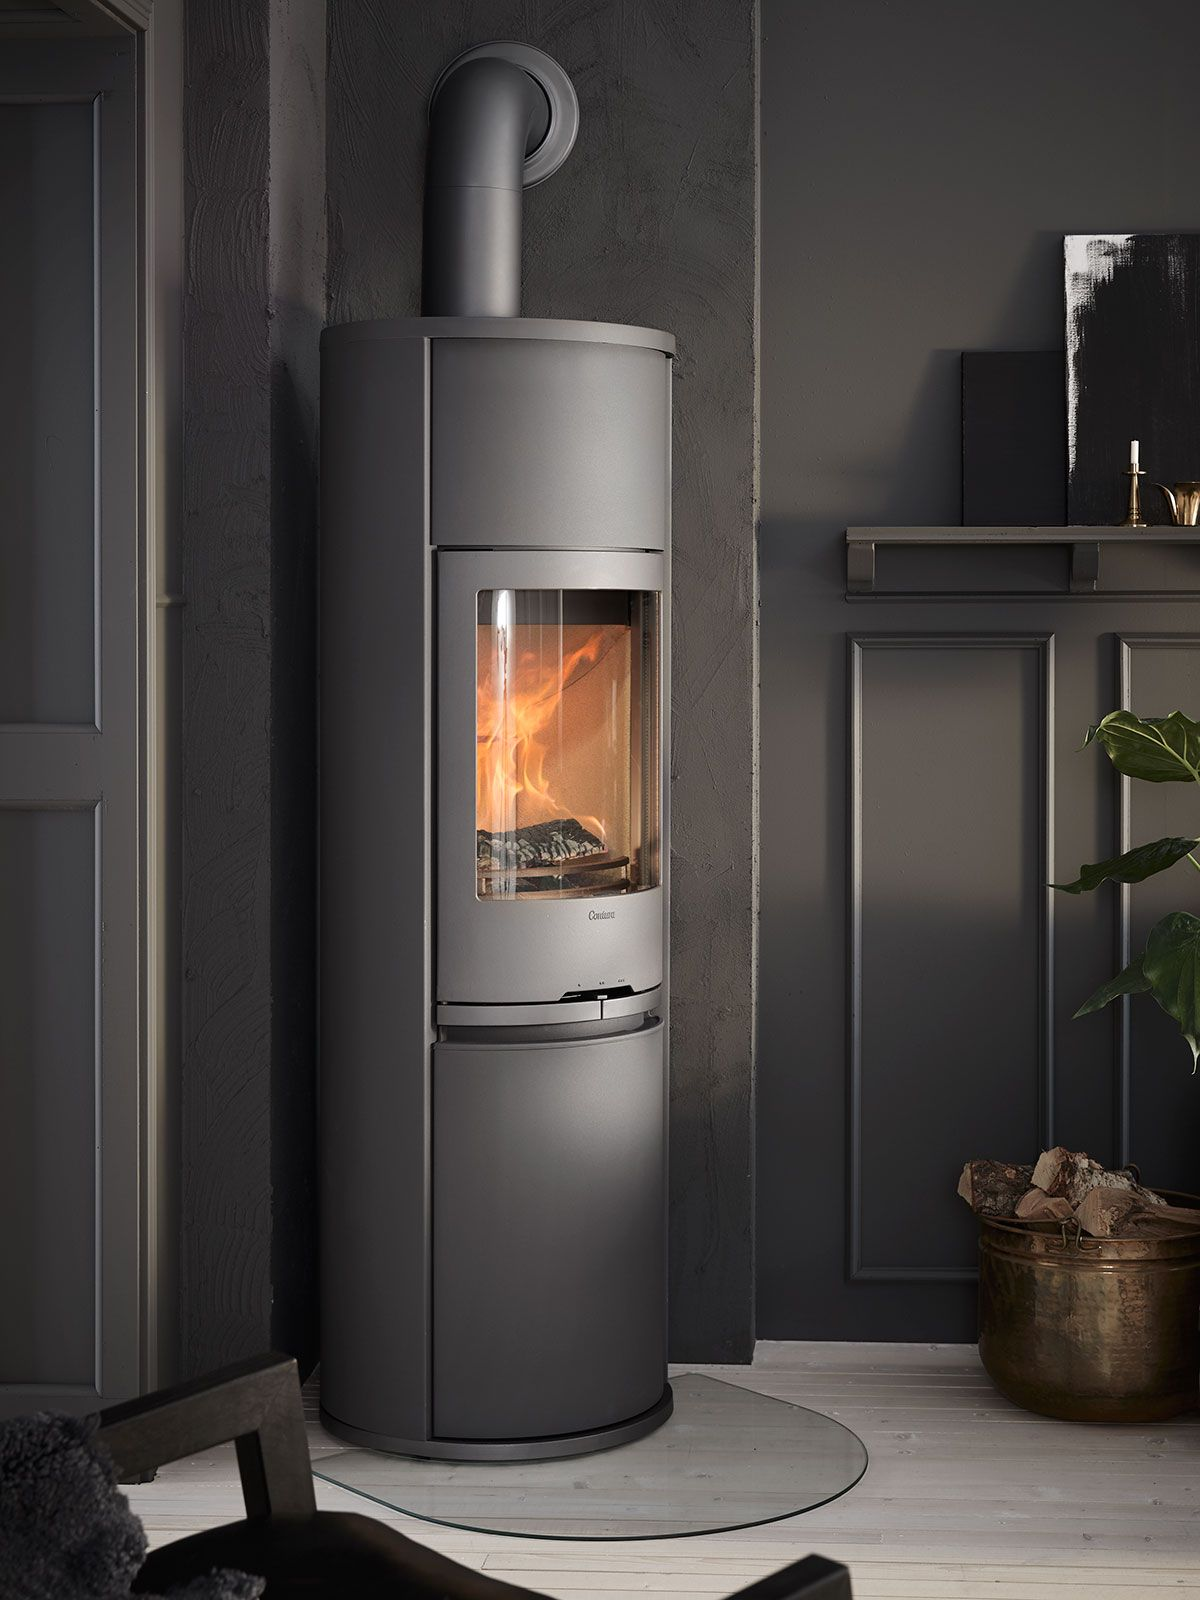 contura 690 style in grey with cast iron door available with